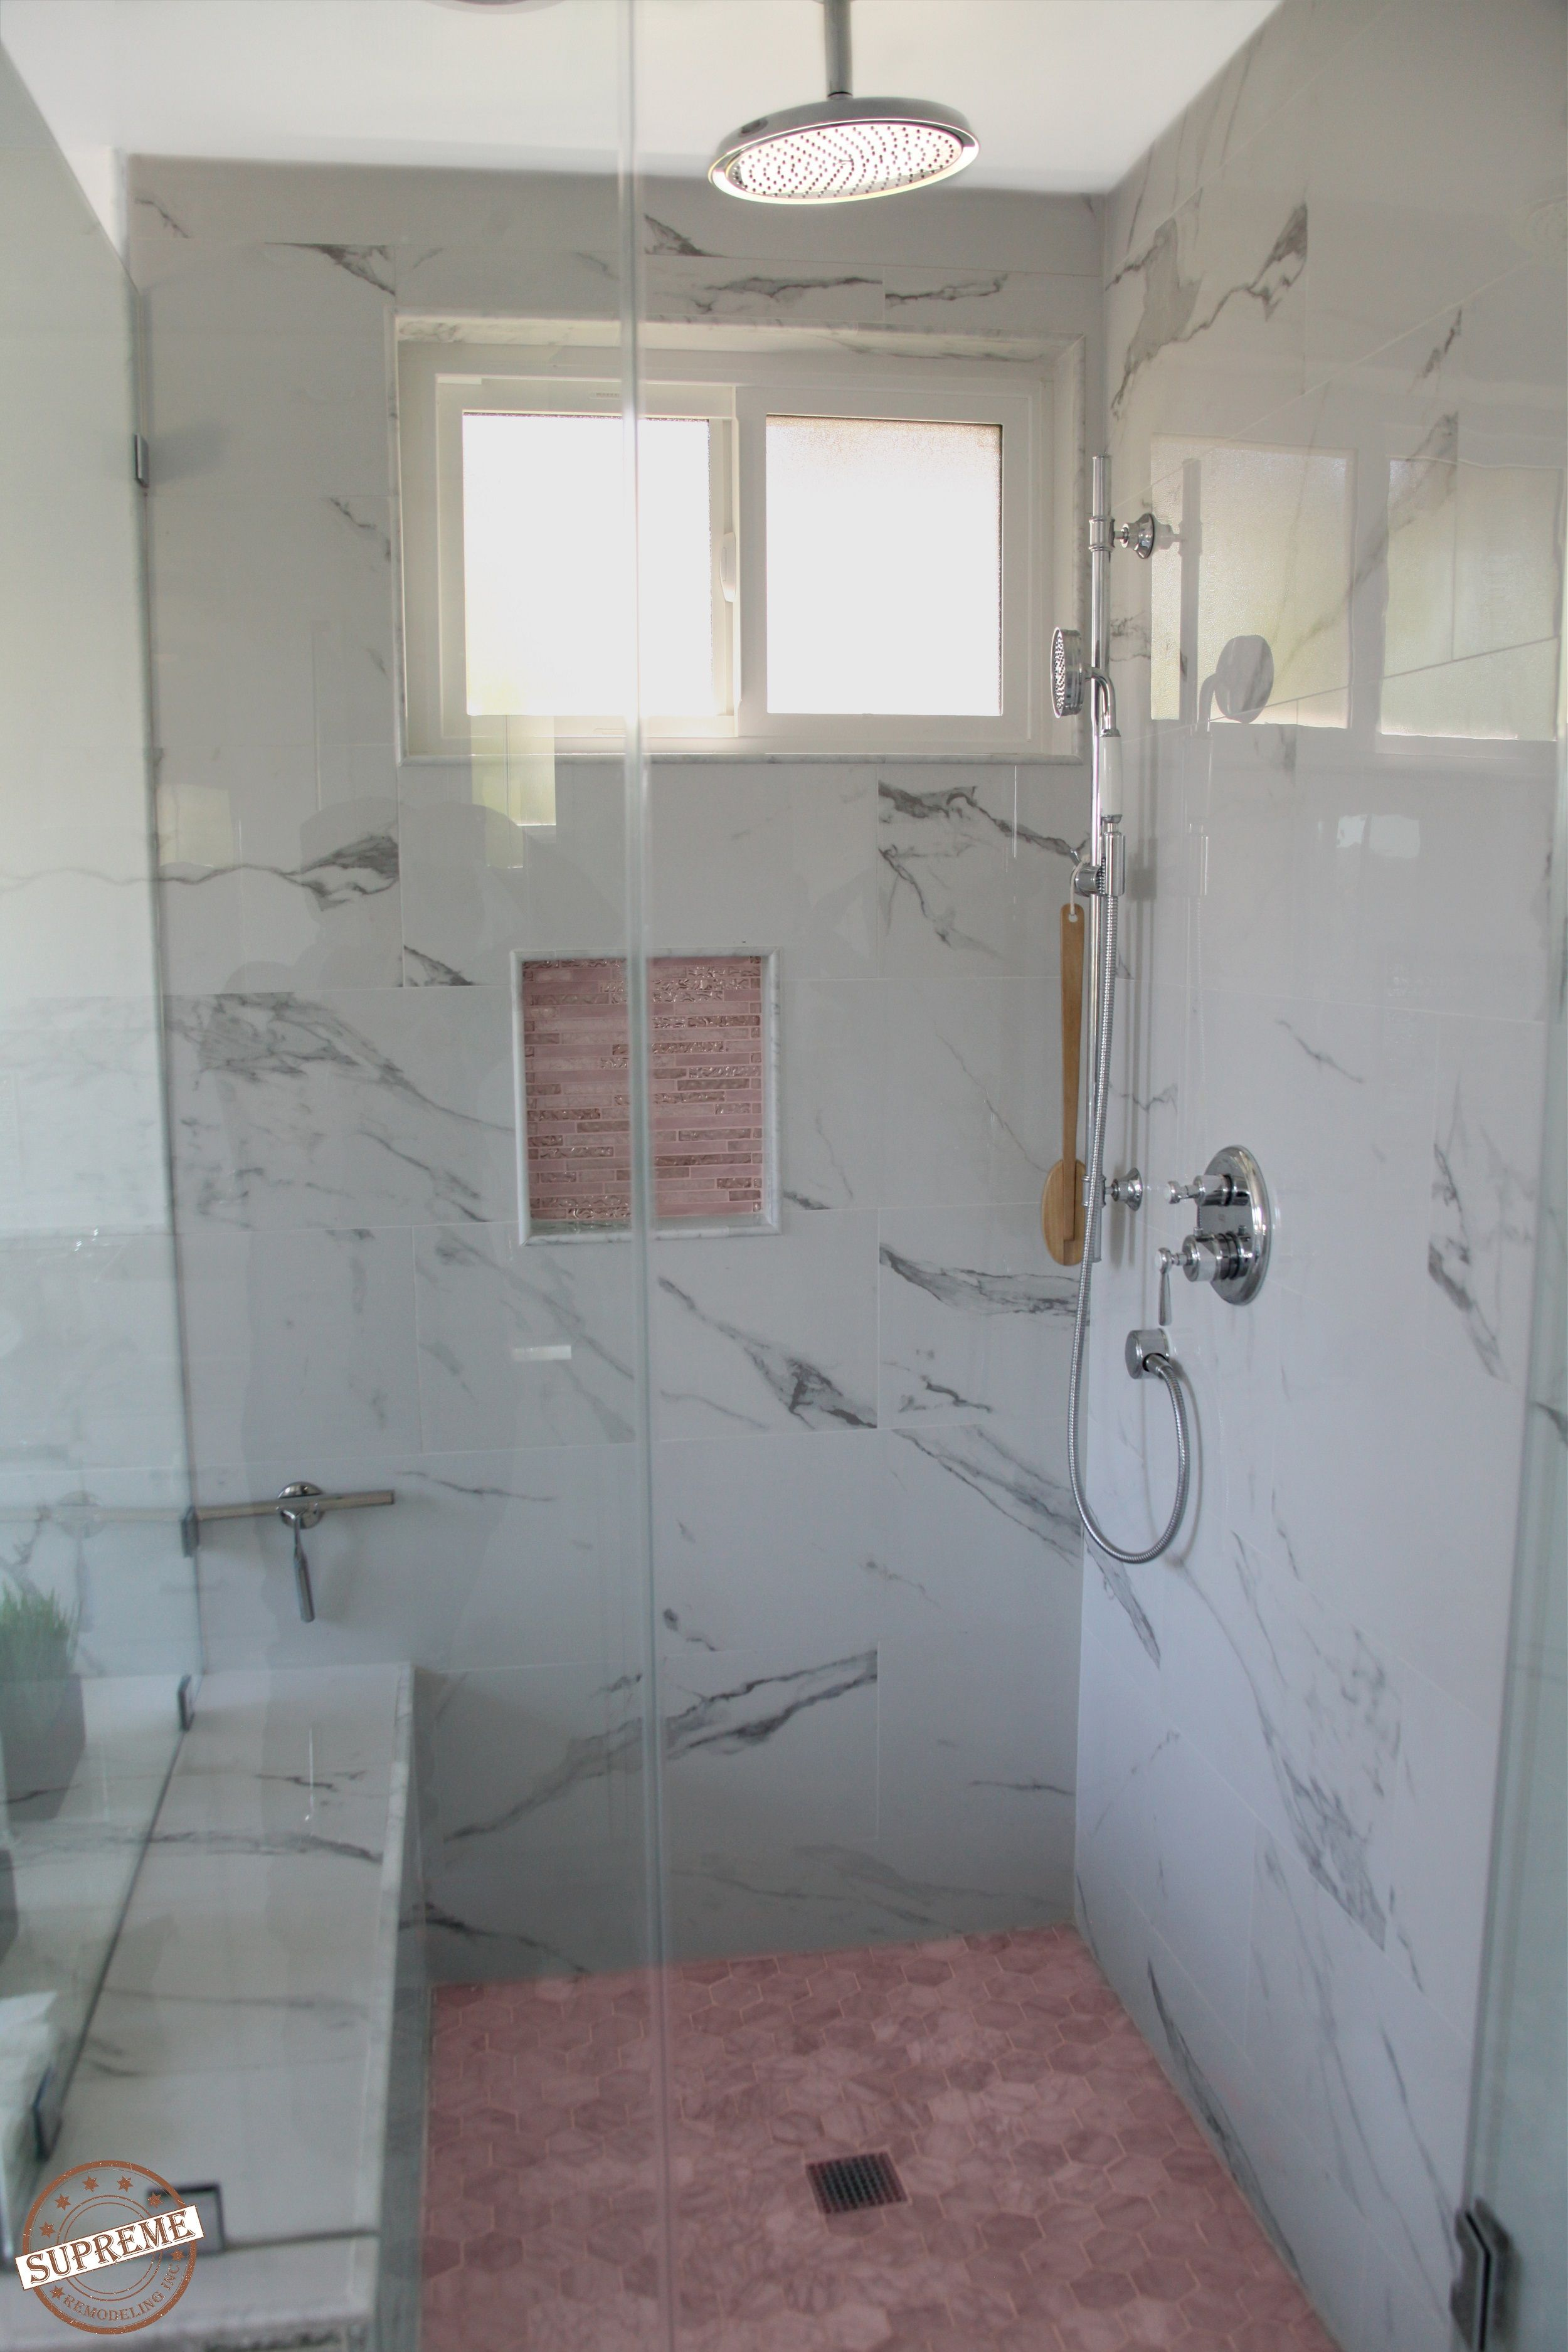 Cultured Marble Is An Elegant Material Choice For A New Shower The Cost Of Project Depends On What Type Chosen Manufacturer